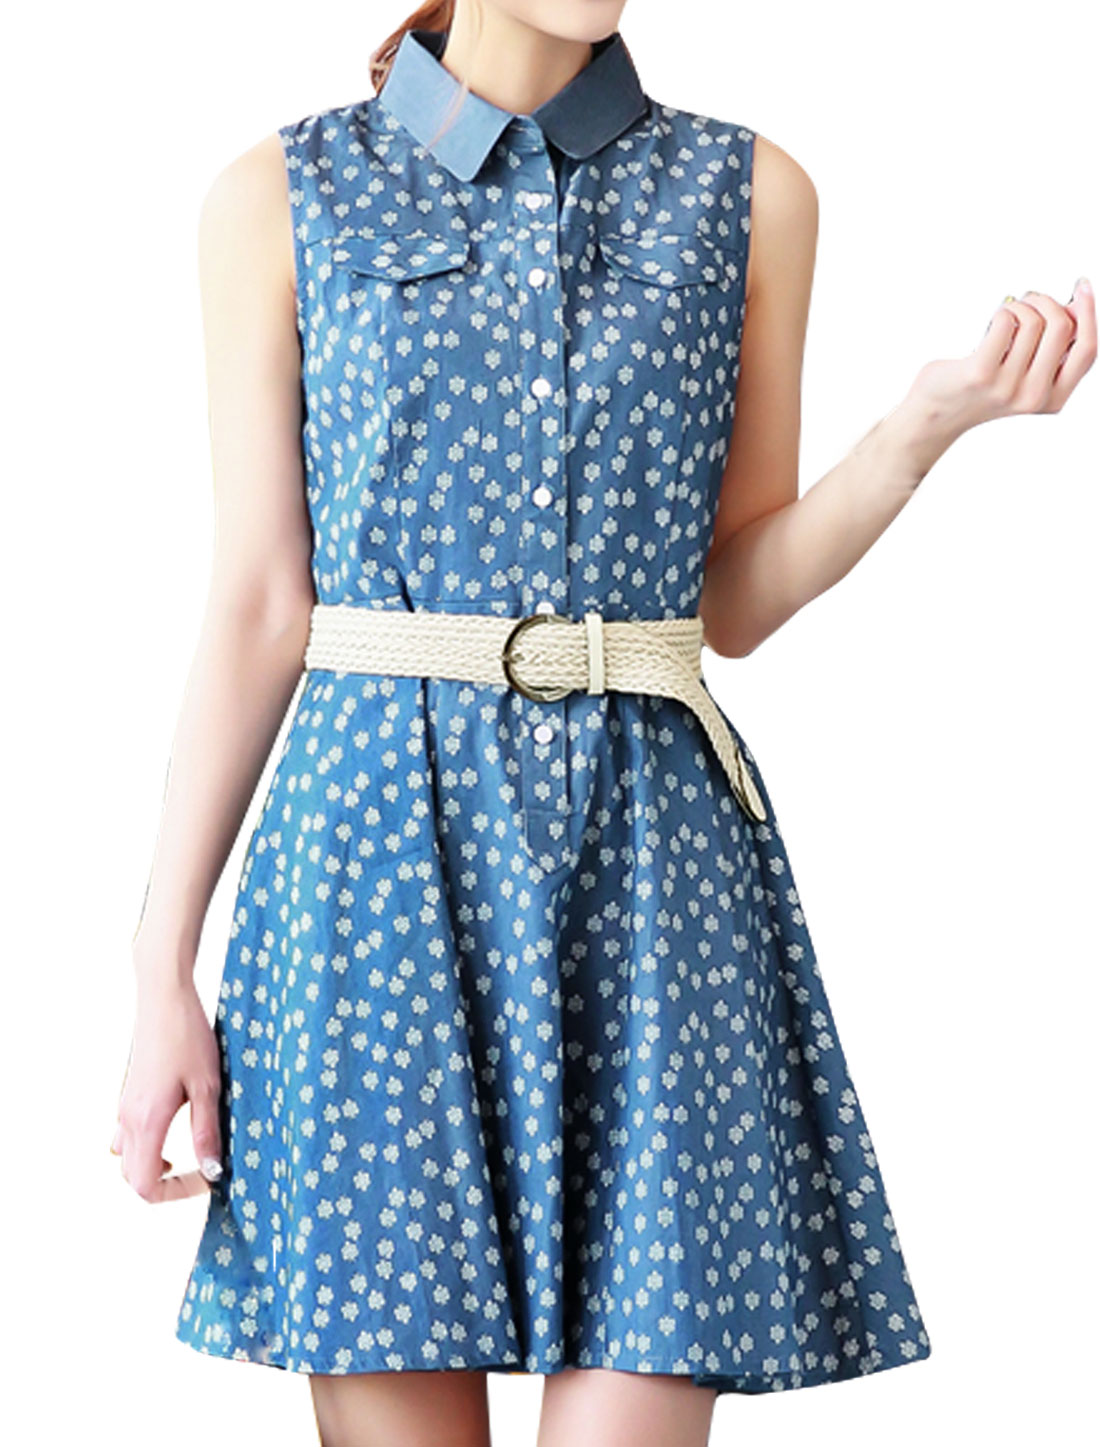 Woman Collared Sleeveless Snowflake Jean Dress w Belt Blue S